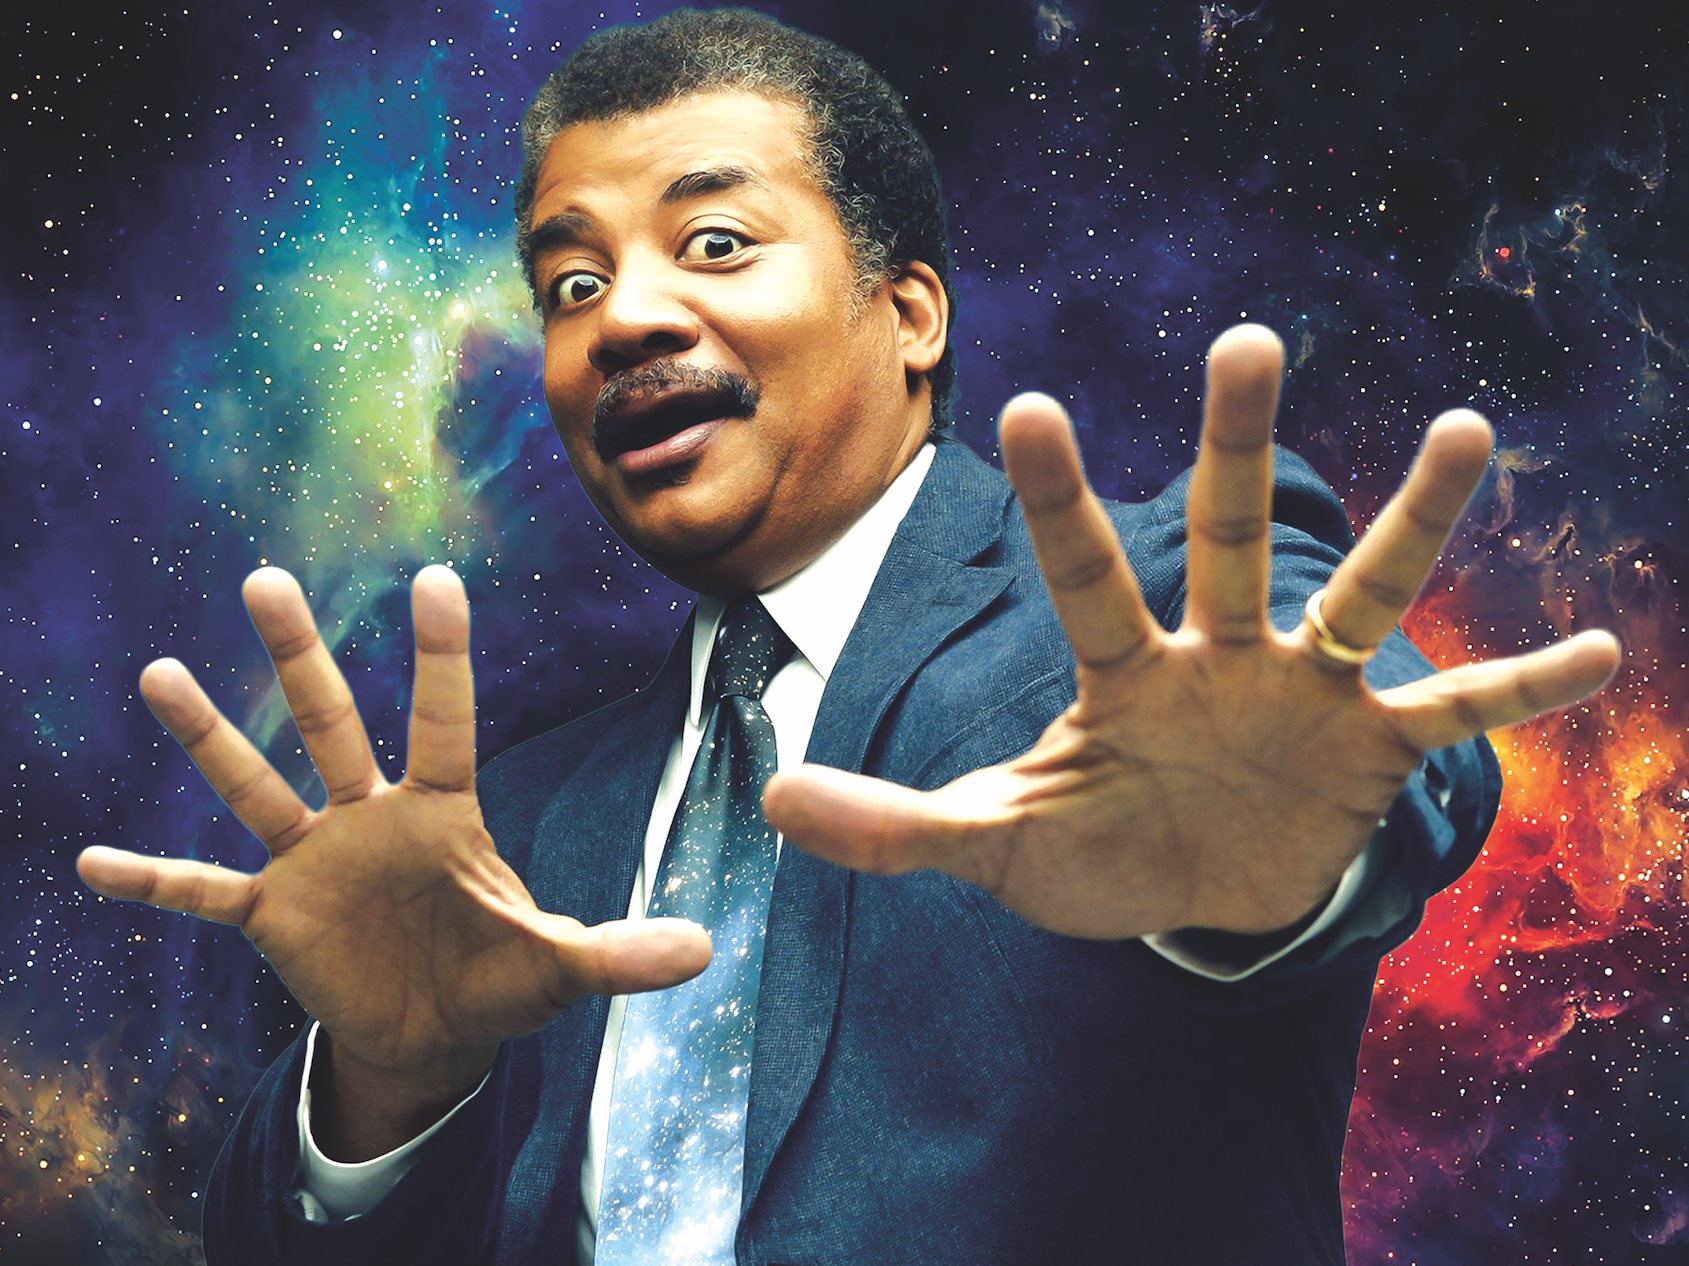 neil degrasse tyson How would neil degrasse tyson – one of the most respected and prolific scientific geniuses of the modern era – resolve a minor conflict with a nagging wife.